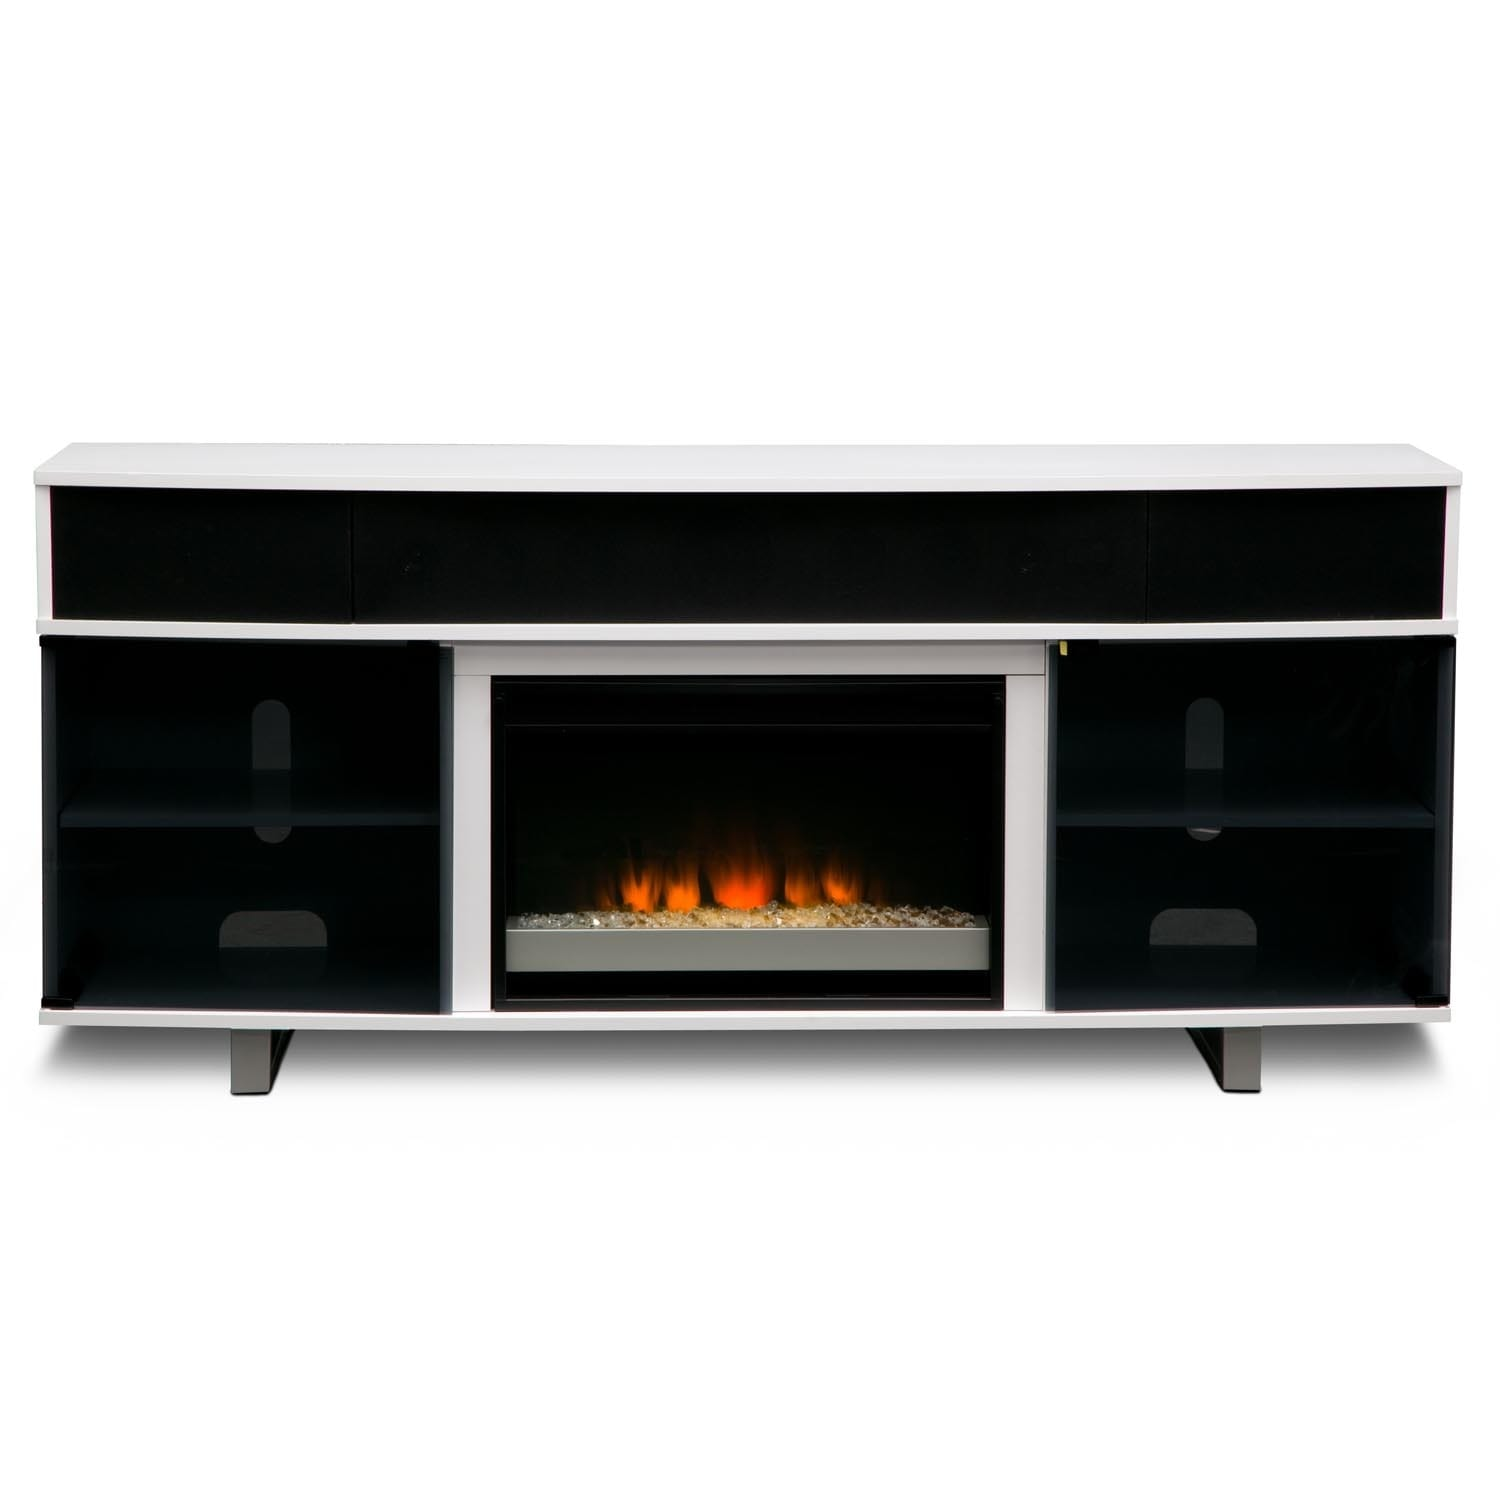 Pacer 72 Contemporary Fireplace Tv Stand With Sound Bar White Value City Furniture